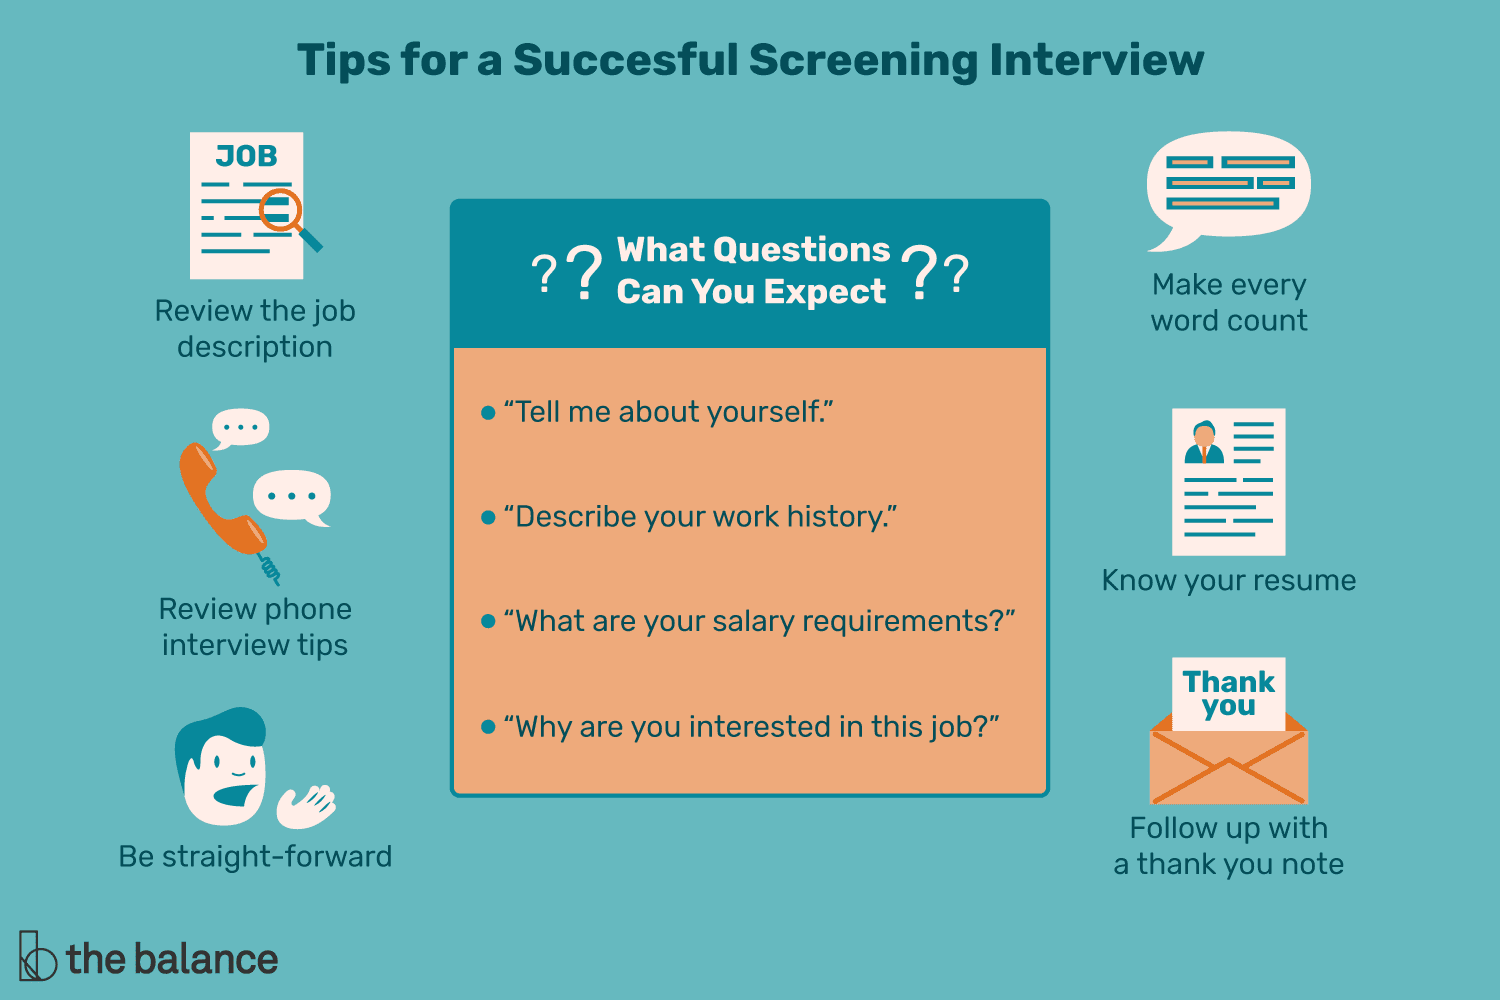 What Is a Screening Interview?